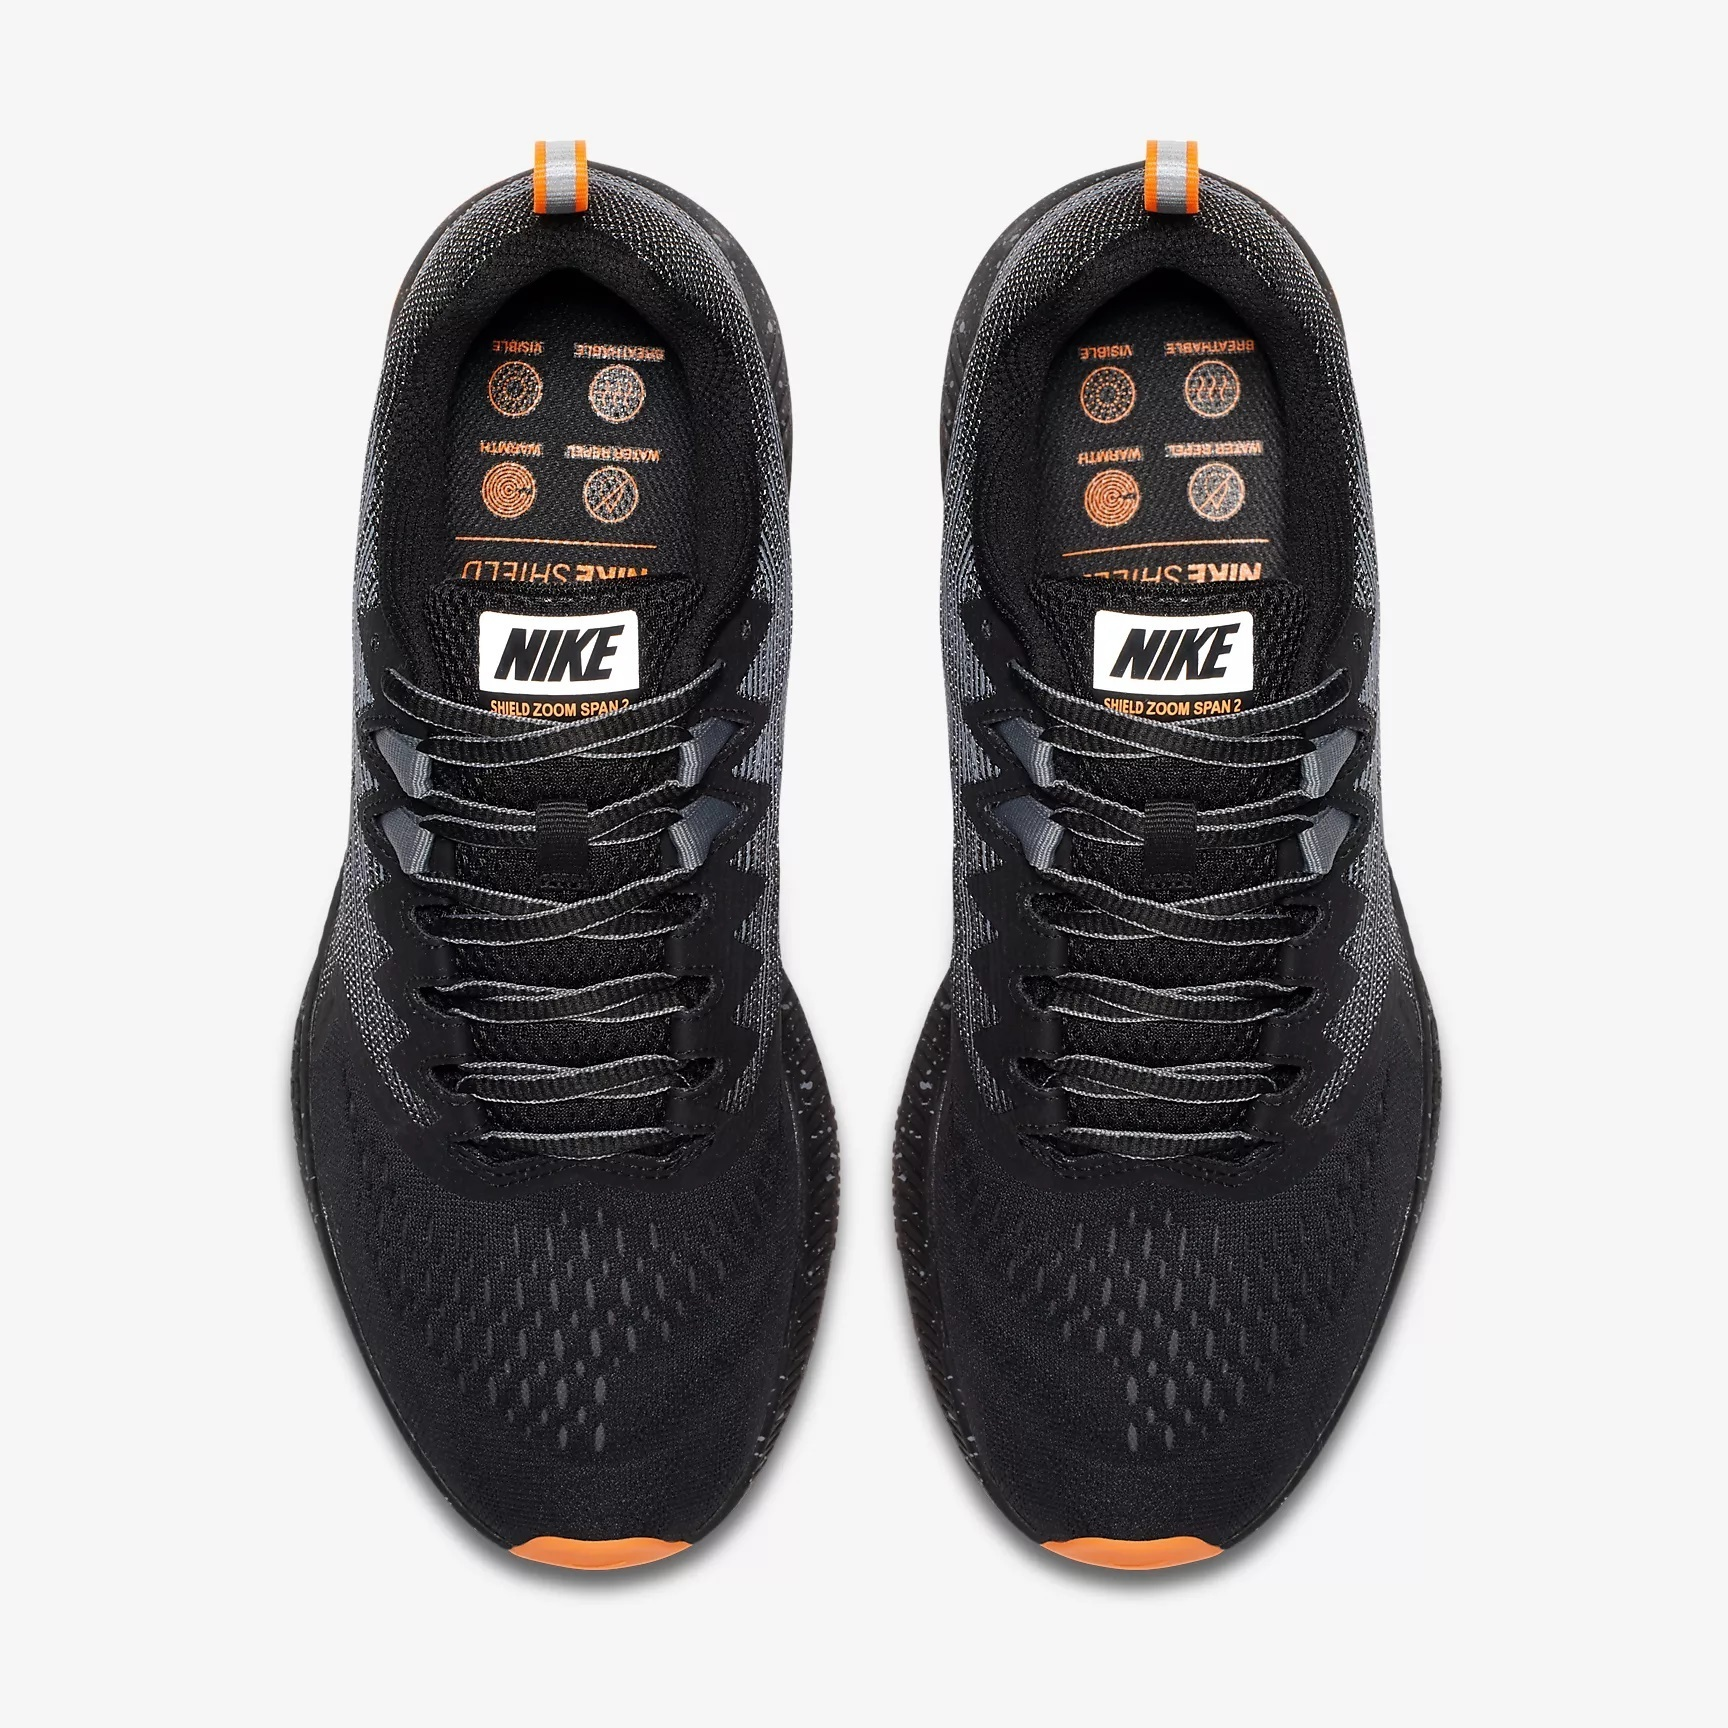 【送料込み】 メンズ NIKE AIR ZOOM SPAN 2 SHIELD